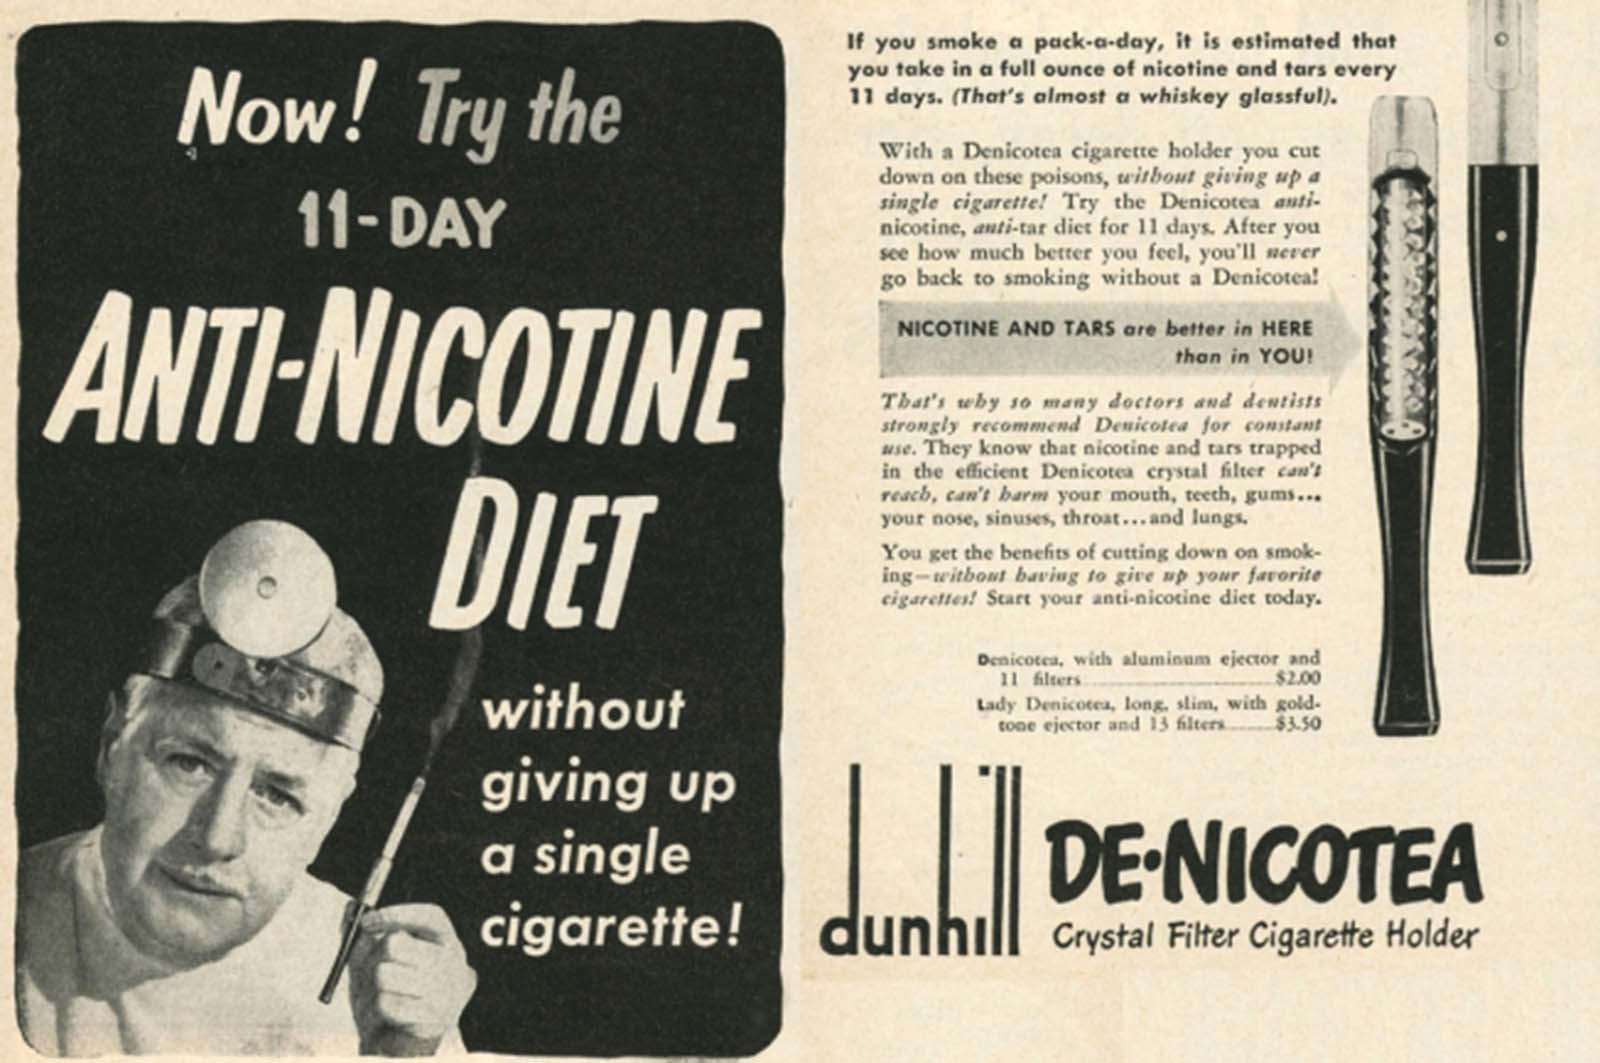 Meet a medical miracle from 1948: the crystal filter. Dunhill's ad calls nicotine a poison, but asserts that with this device, you can protect yourself